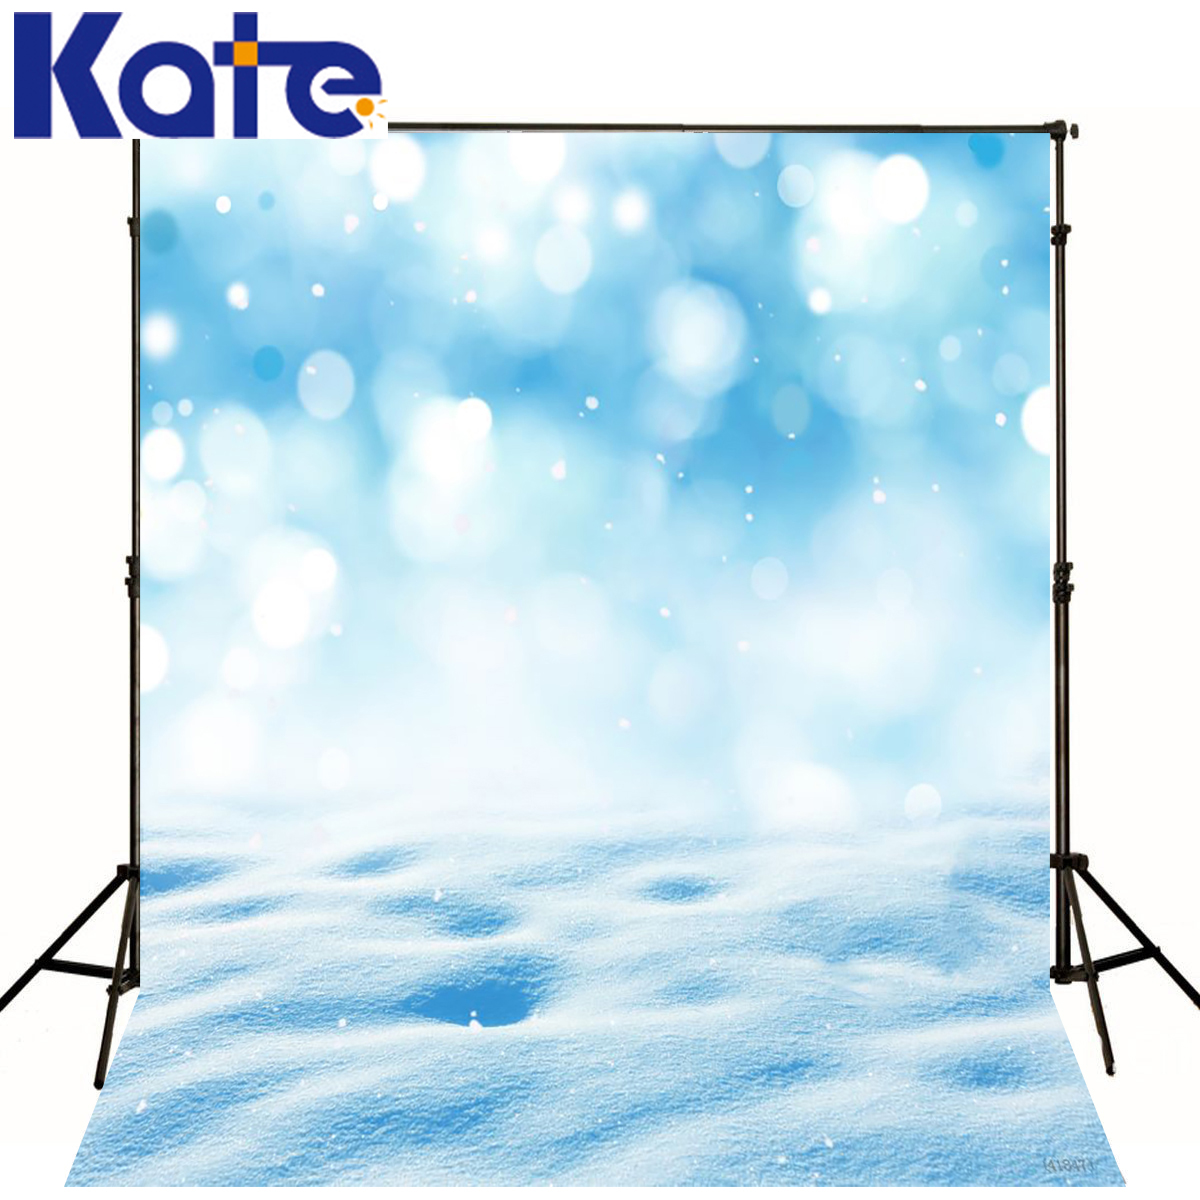 Kate Backdrop Photo Dream Spot Blue Style Scenery Backdrops Photography Snow Is Land Background For Photo Shoot<br>